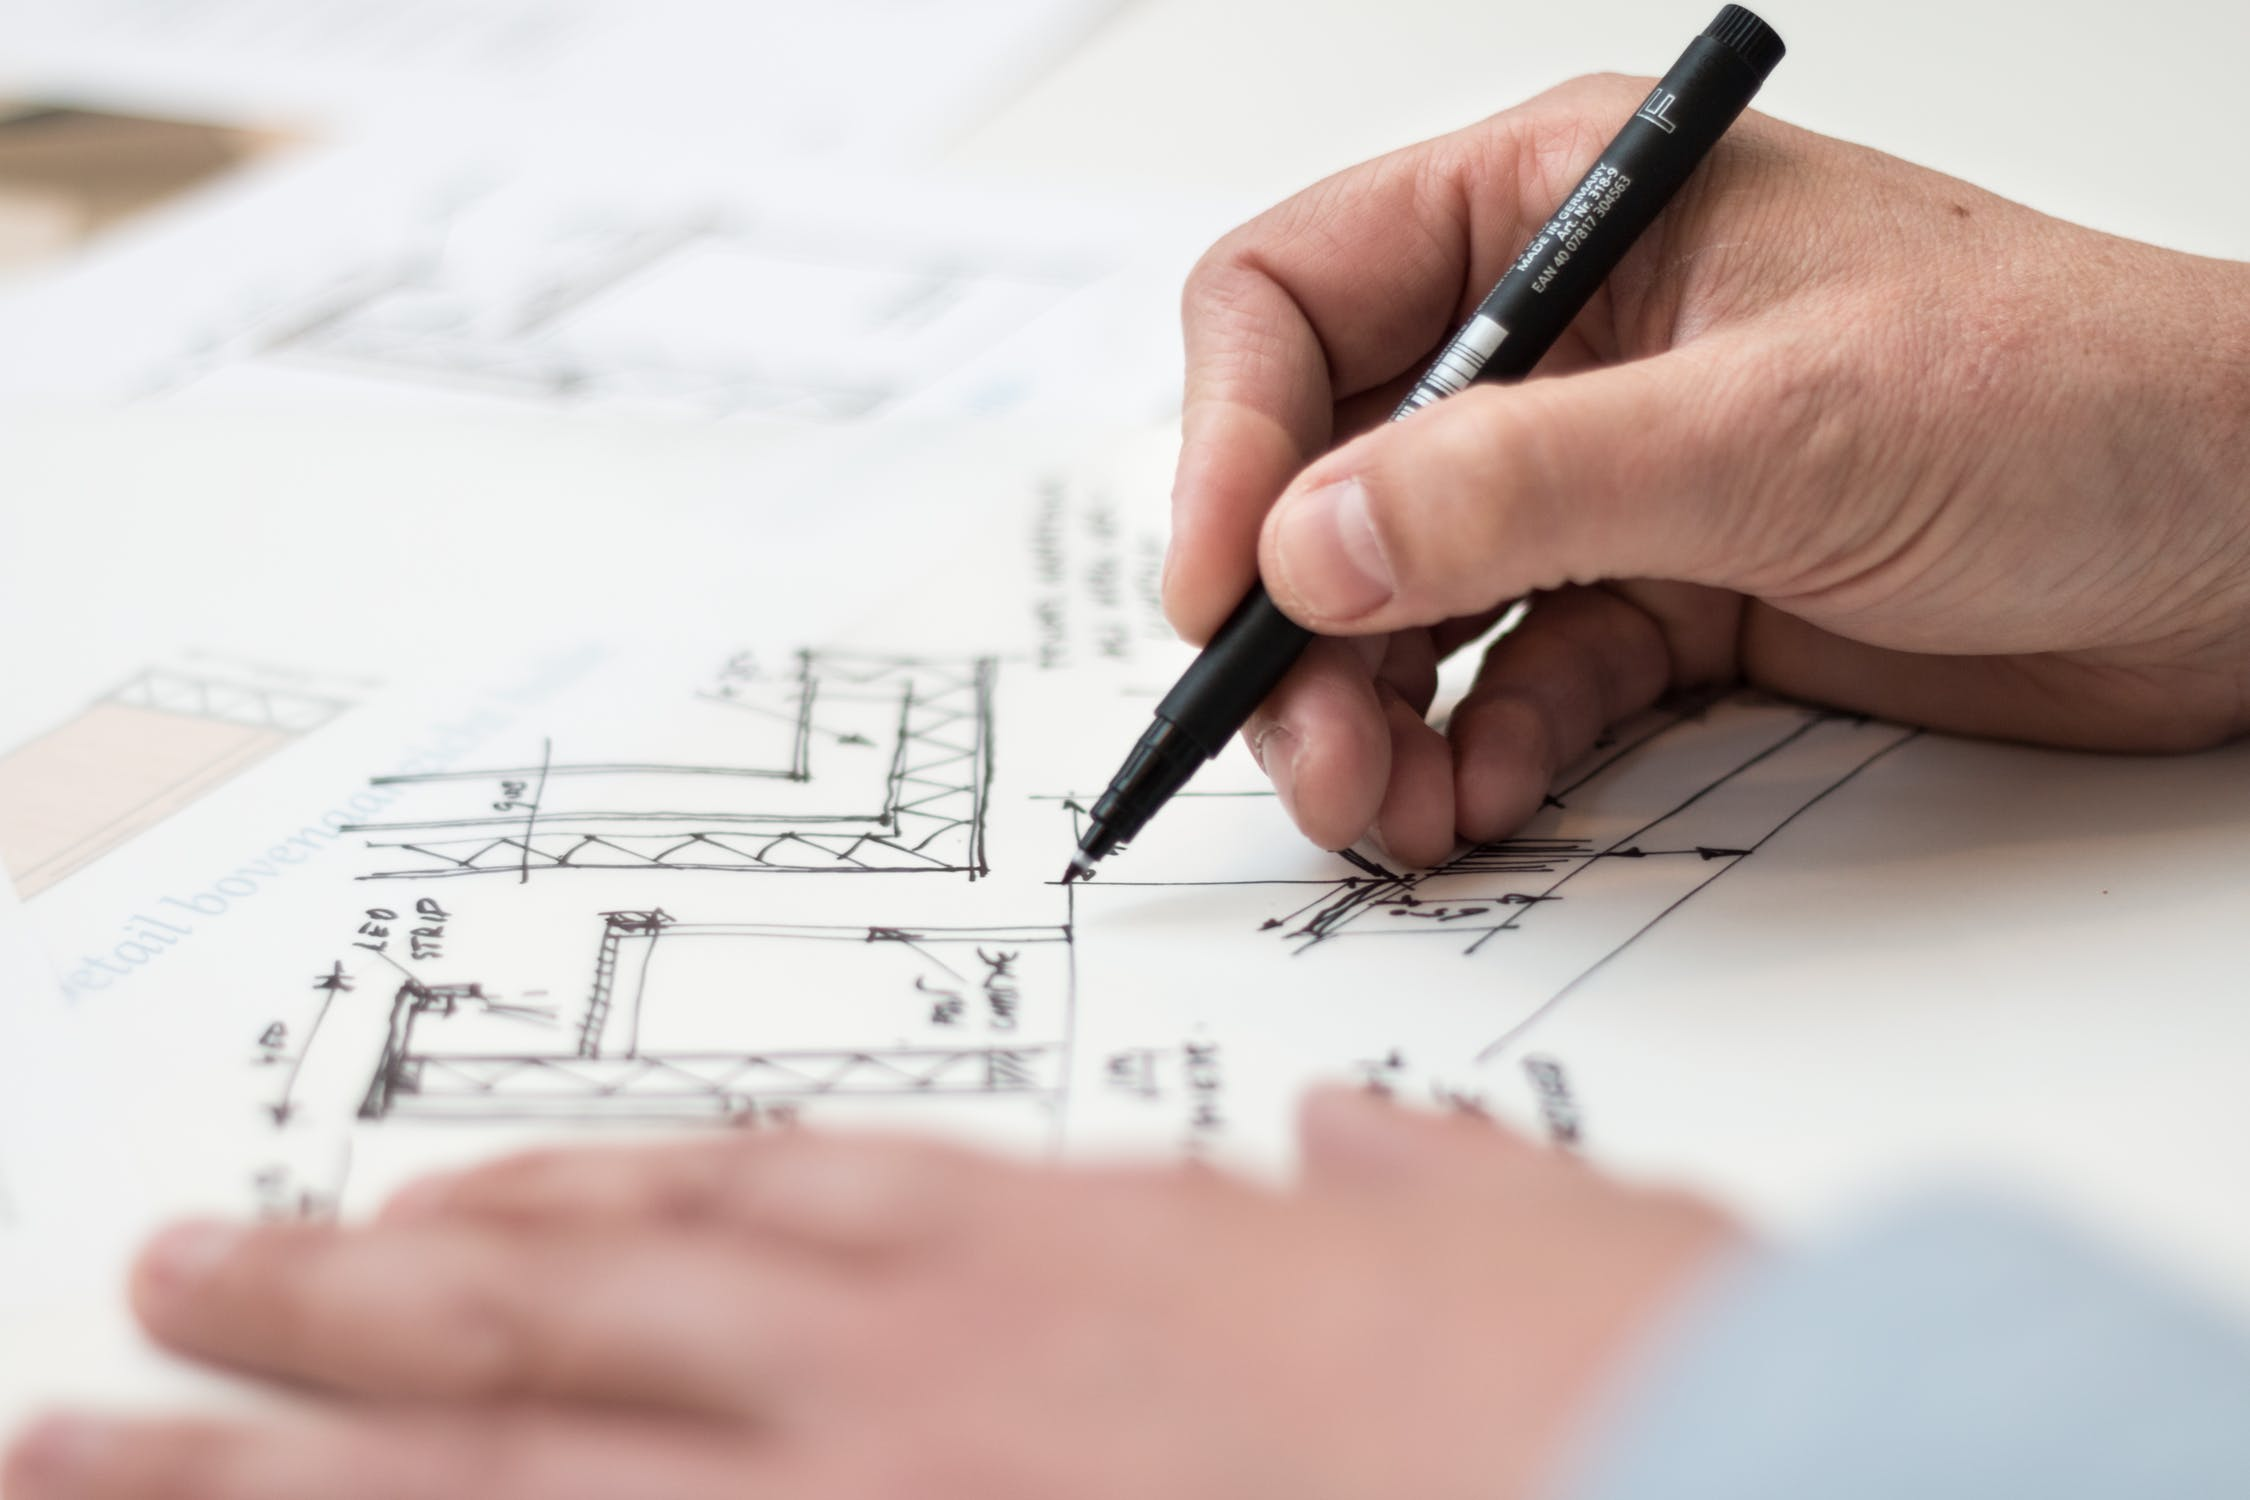 Have You Ever Considered Any Home Addition Plans?